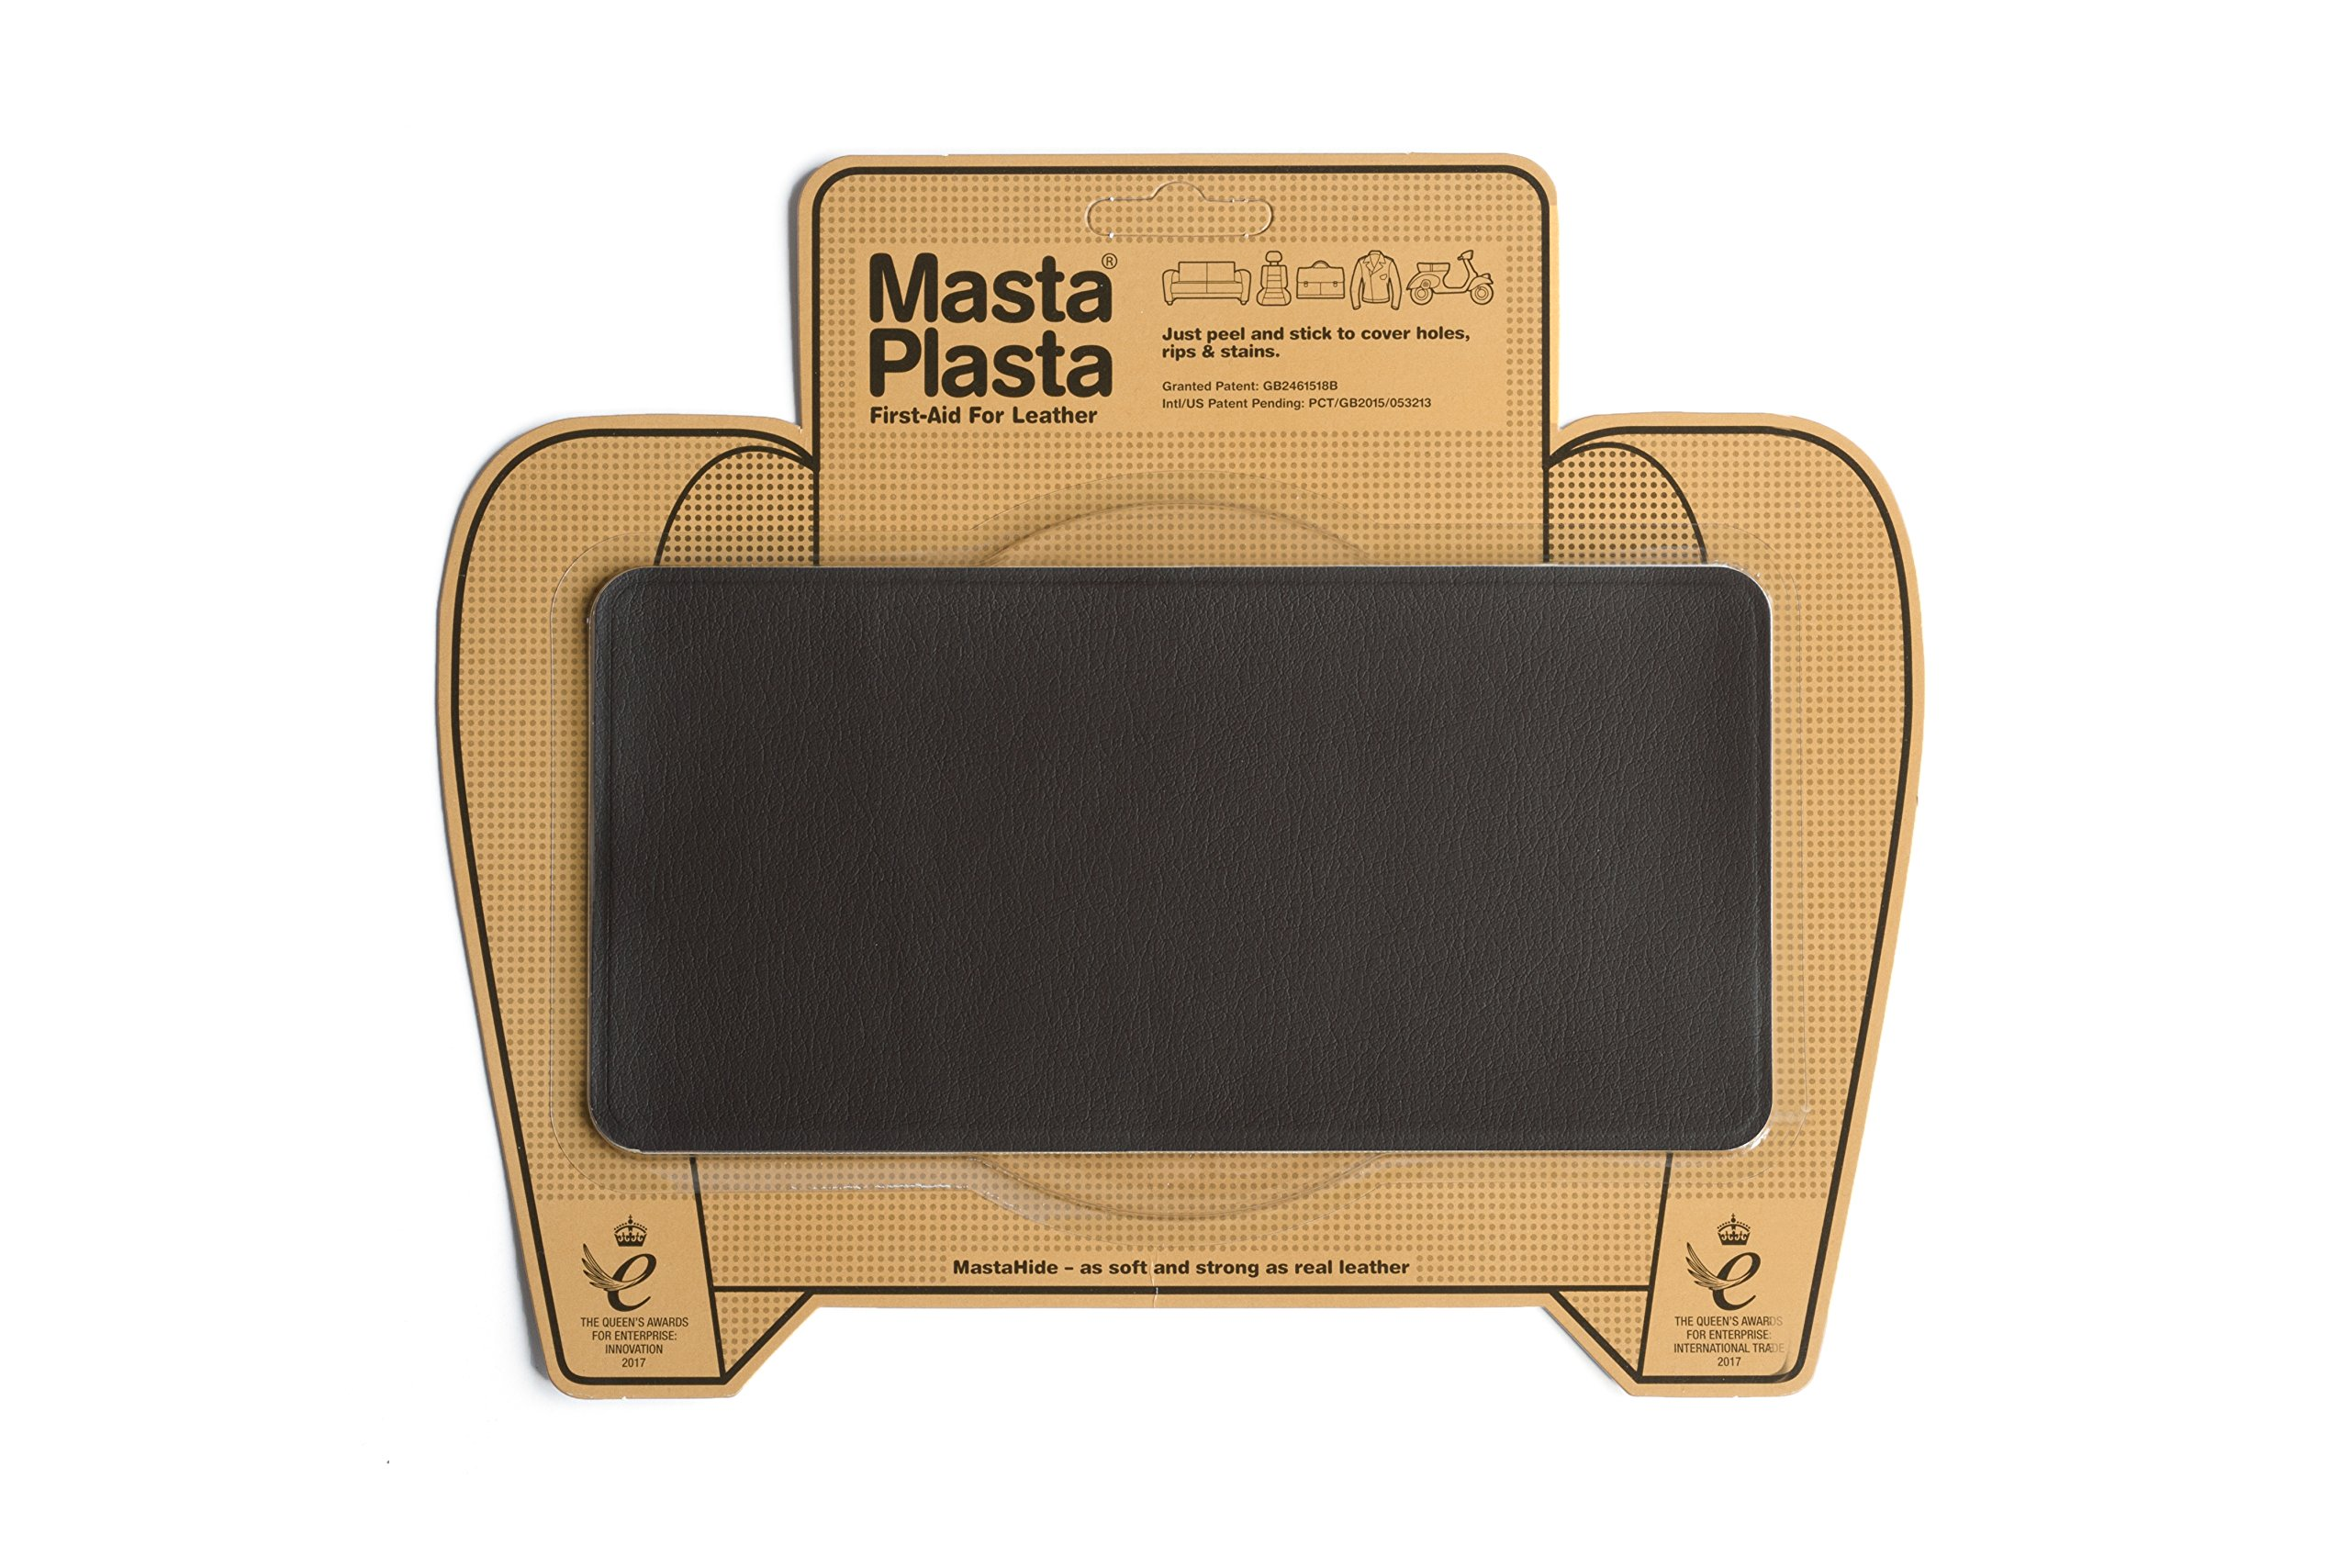 MastaPlasta Leather Repair Patch Firstaid for Sofas Car Seats Handbags Jackets etc Dark Brown Color Plain 8 inch by 4 inch Designs Vary